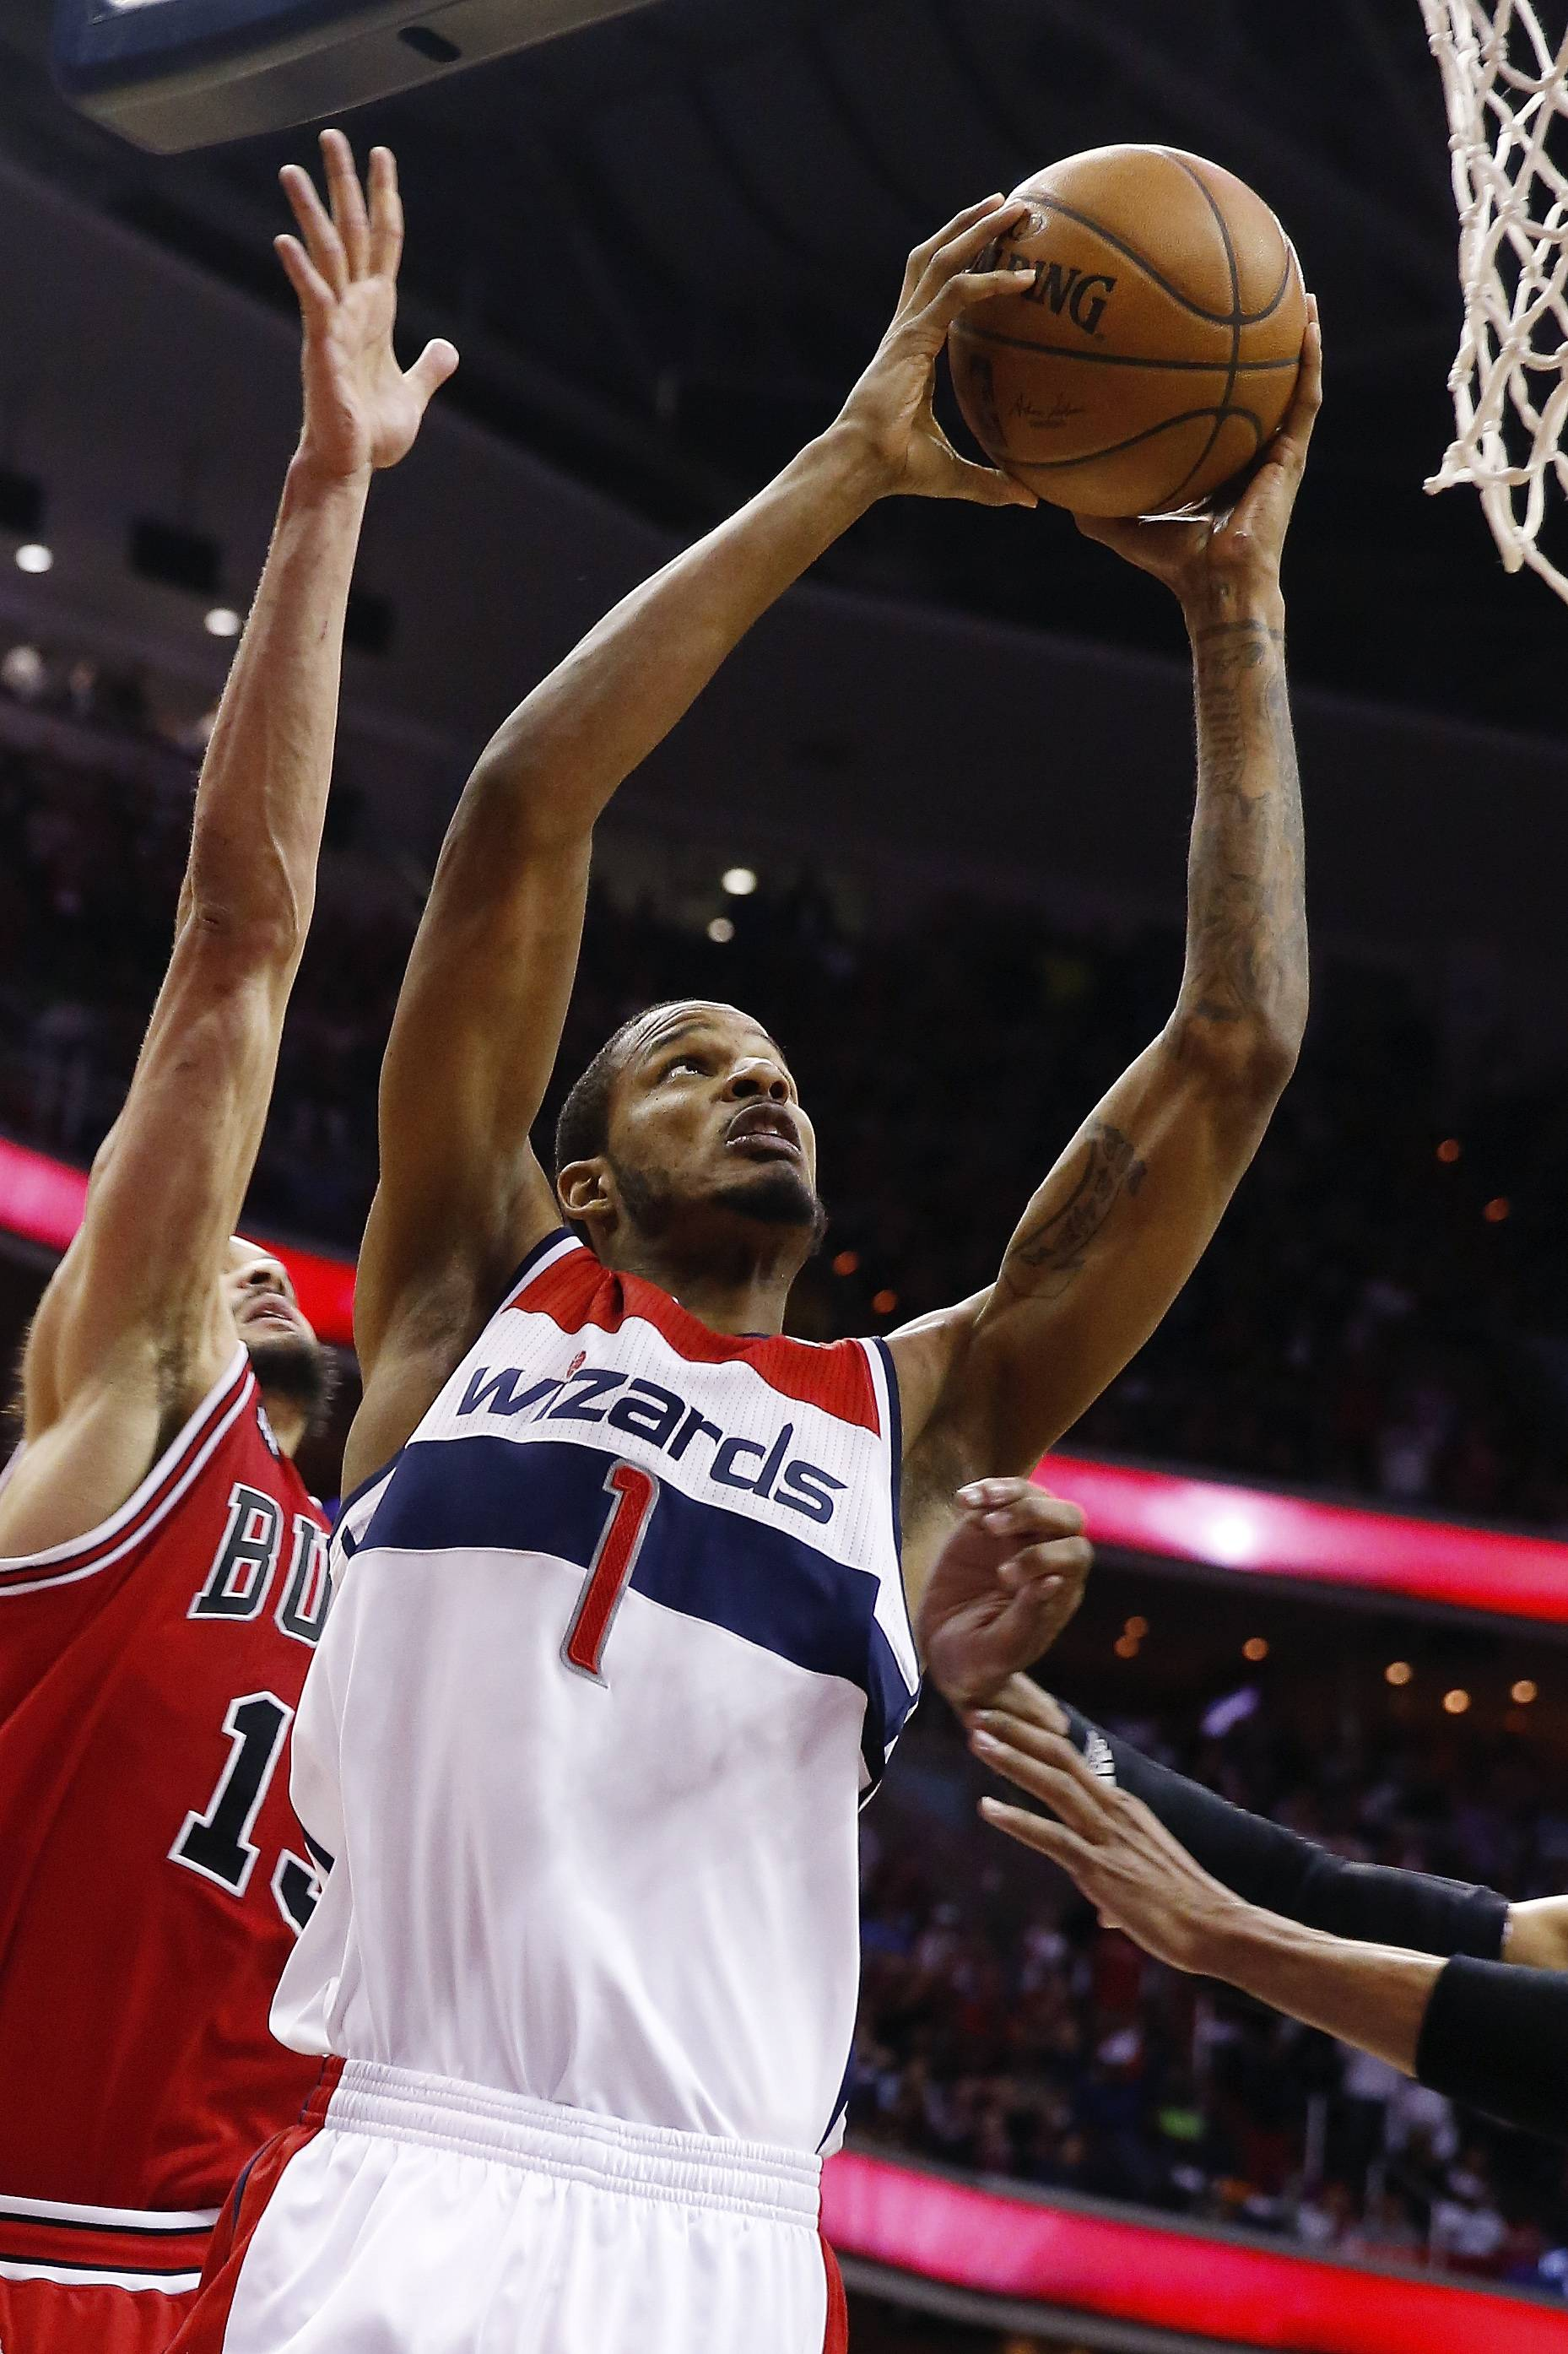 Washington Wizards forward Trevor Ariza (1) shots for two points under pressure from Chicago Bulls center Joakim Noah (13) during the second half. The Wizards defeated the Bulls 98-89.